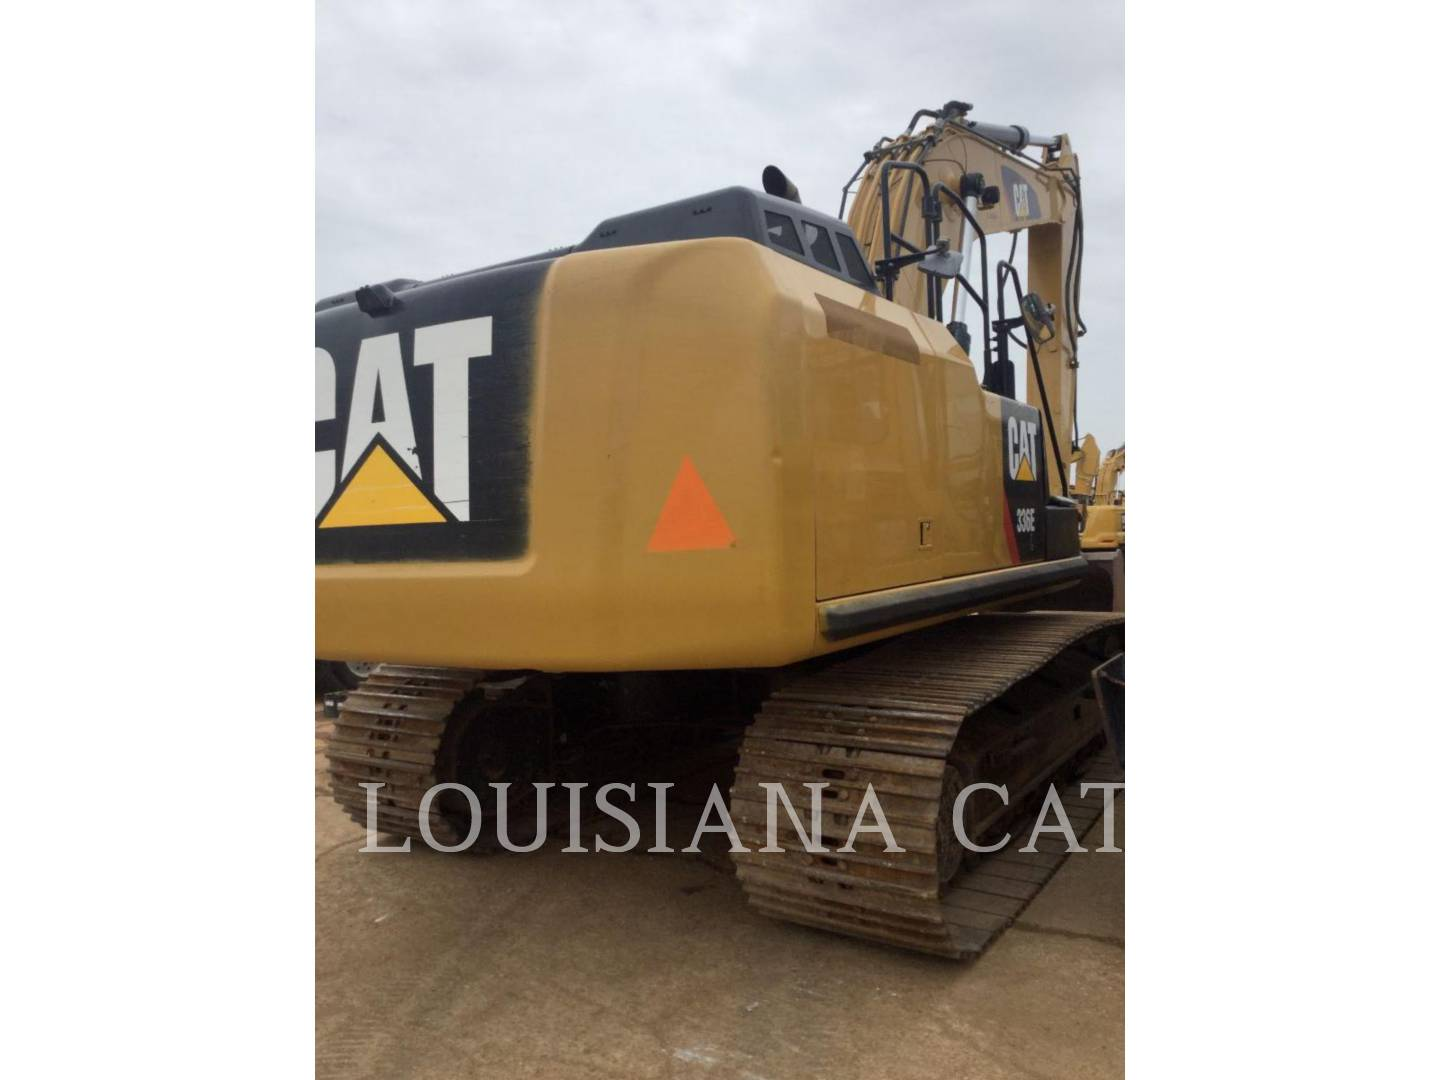 Cat Forestry Machine - Forestry Equipment in Louisiana